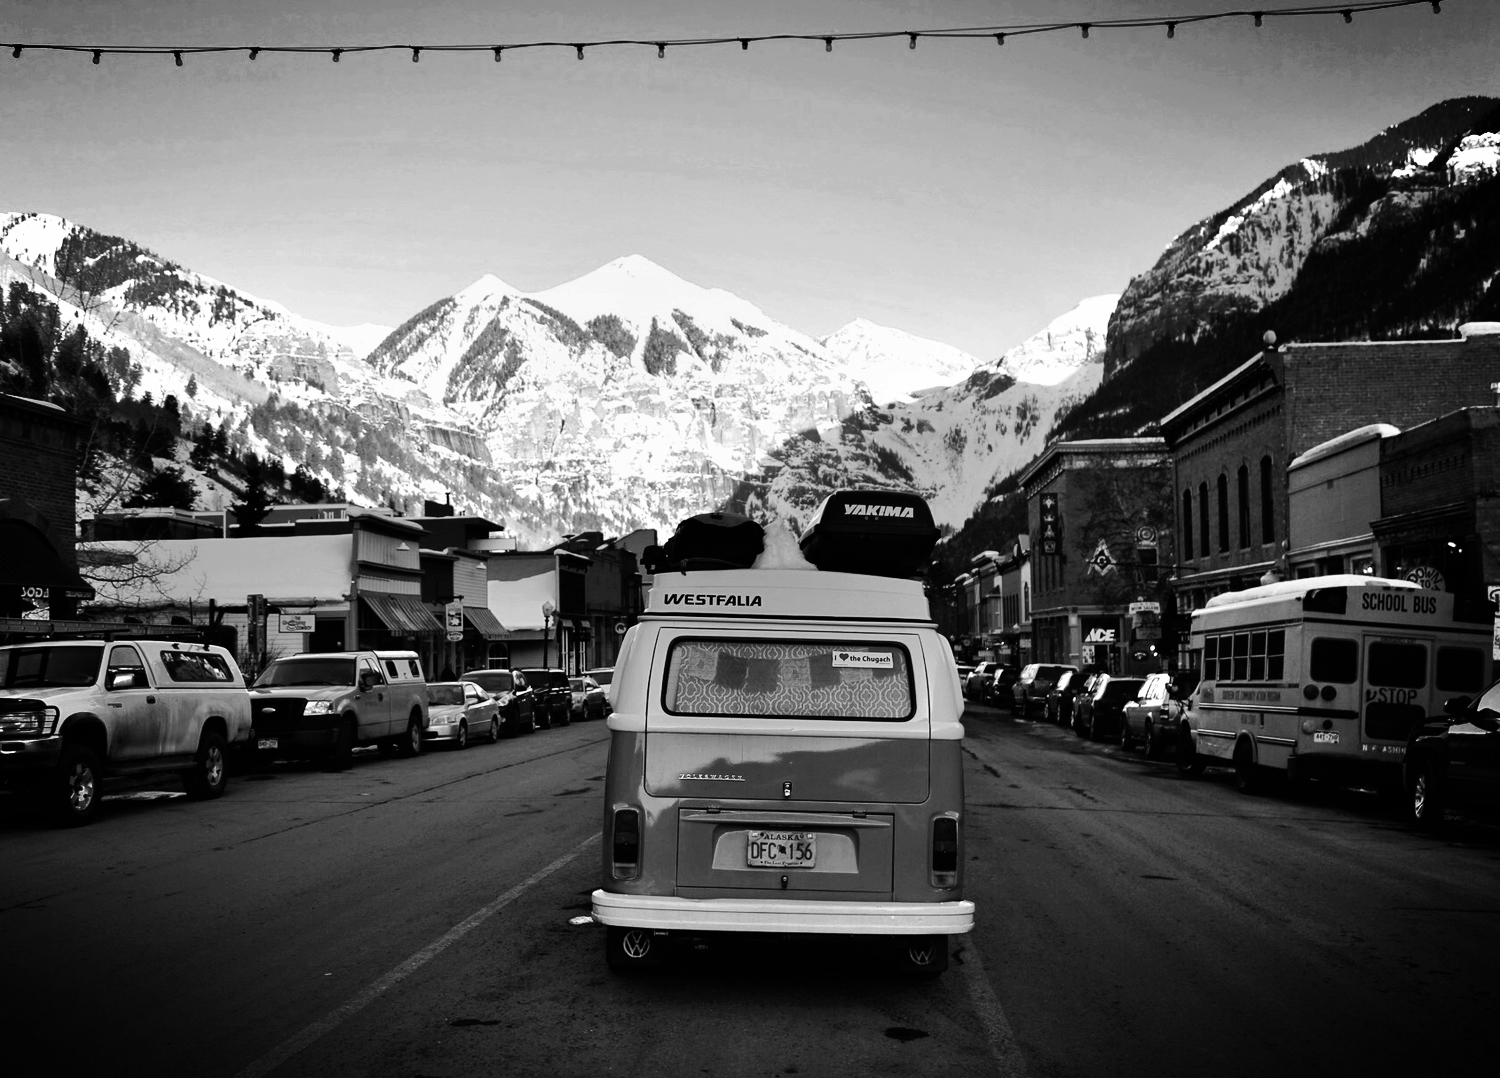 The bus in downtown Telluride.